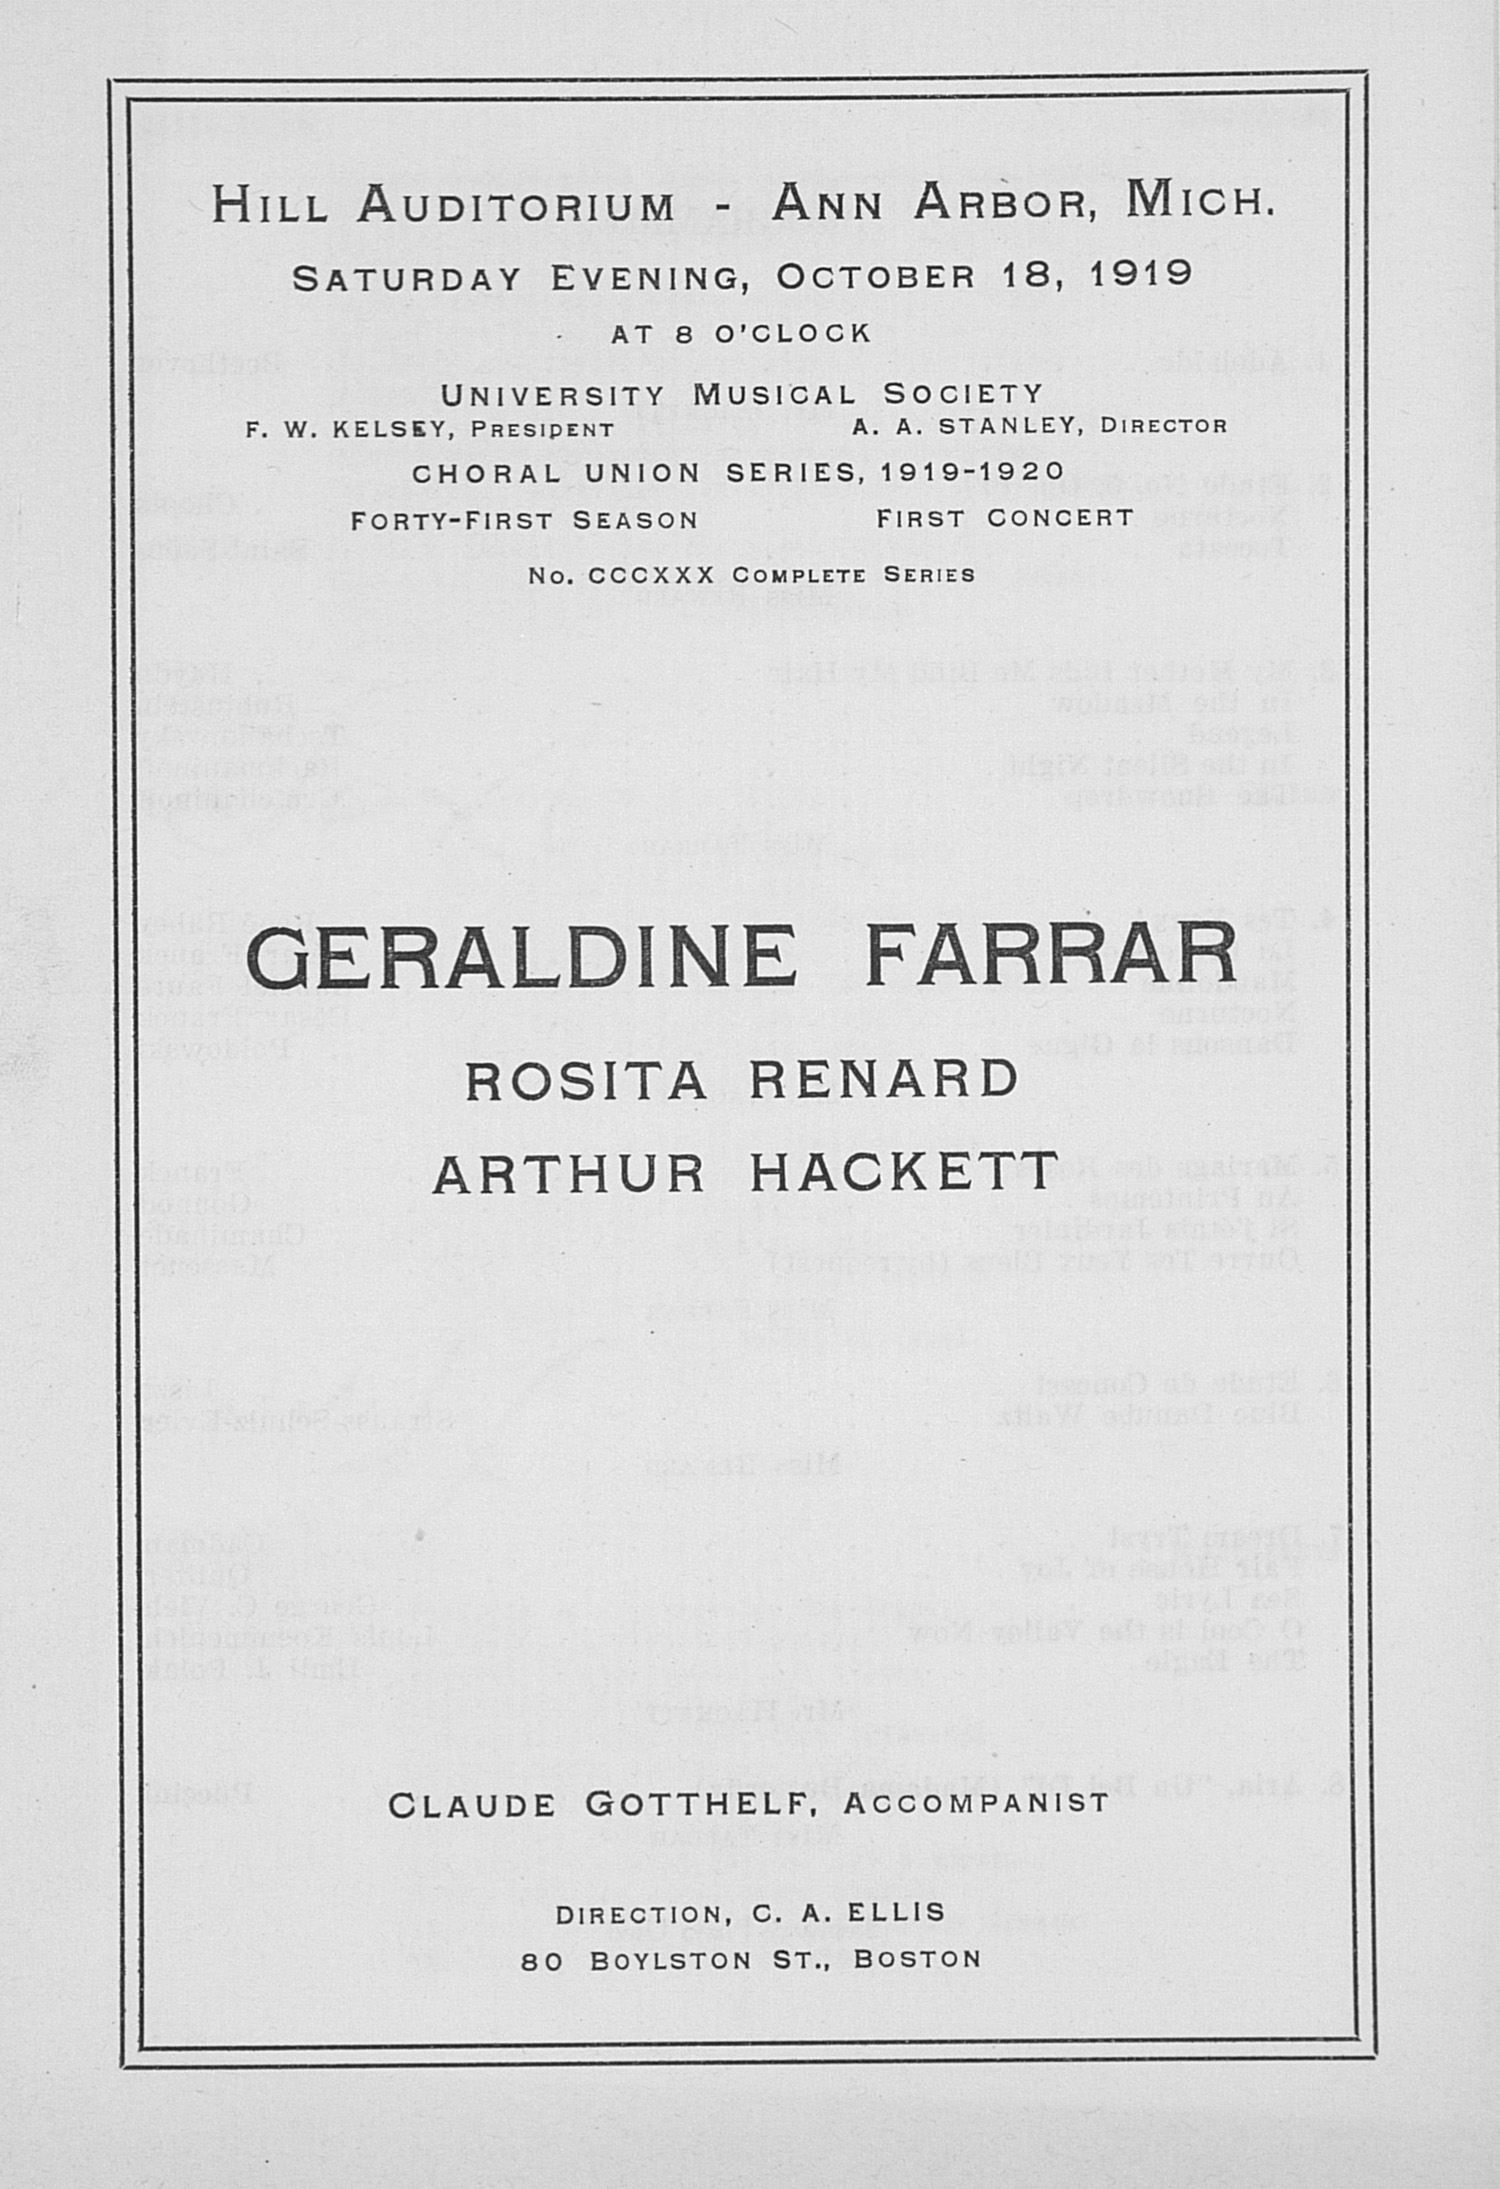 UMS Concert Program, October 18, 1919: Choral Union Series -- Geraldine Farrar image